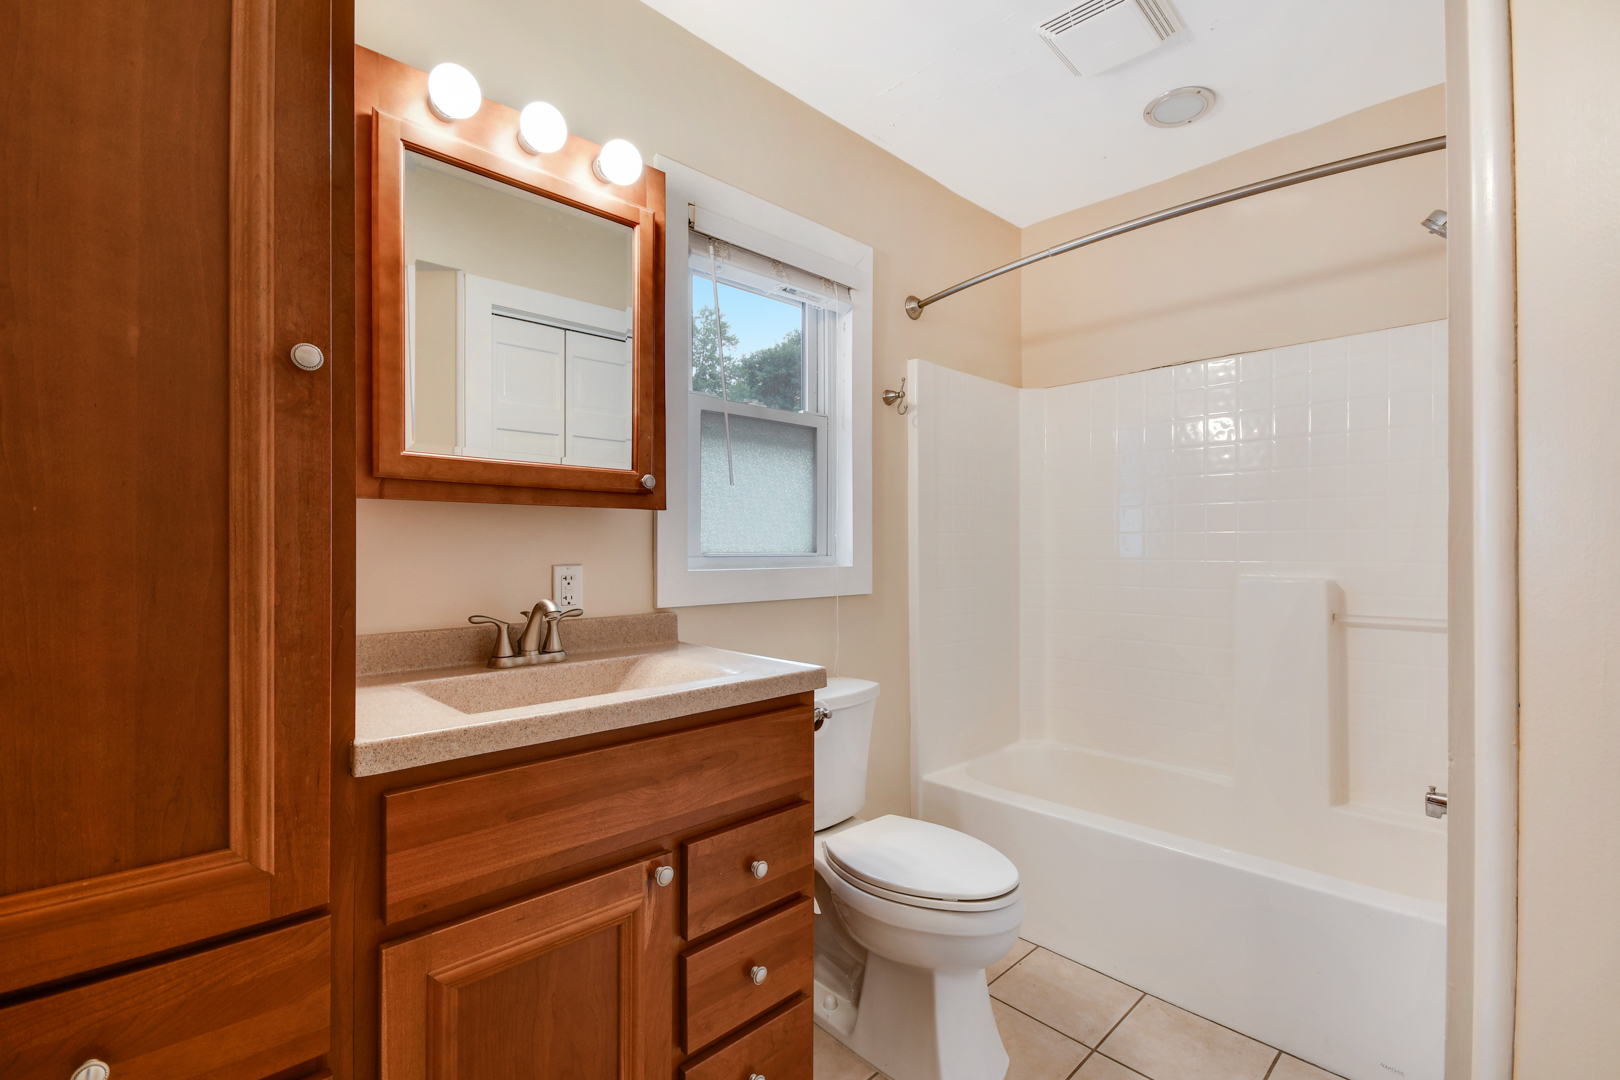 1720 South 5th, ST. CHARLES, Illinois, 60174